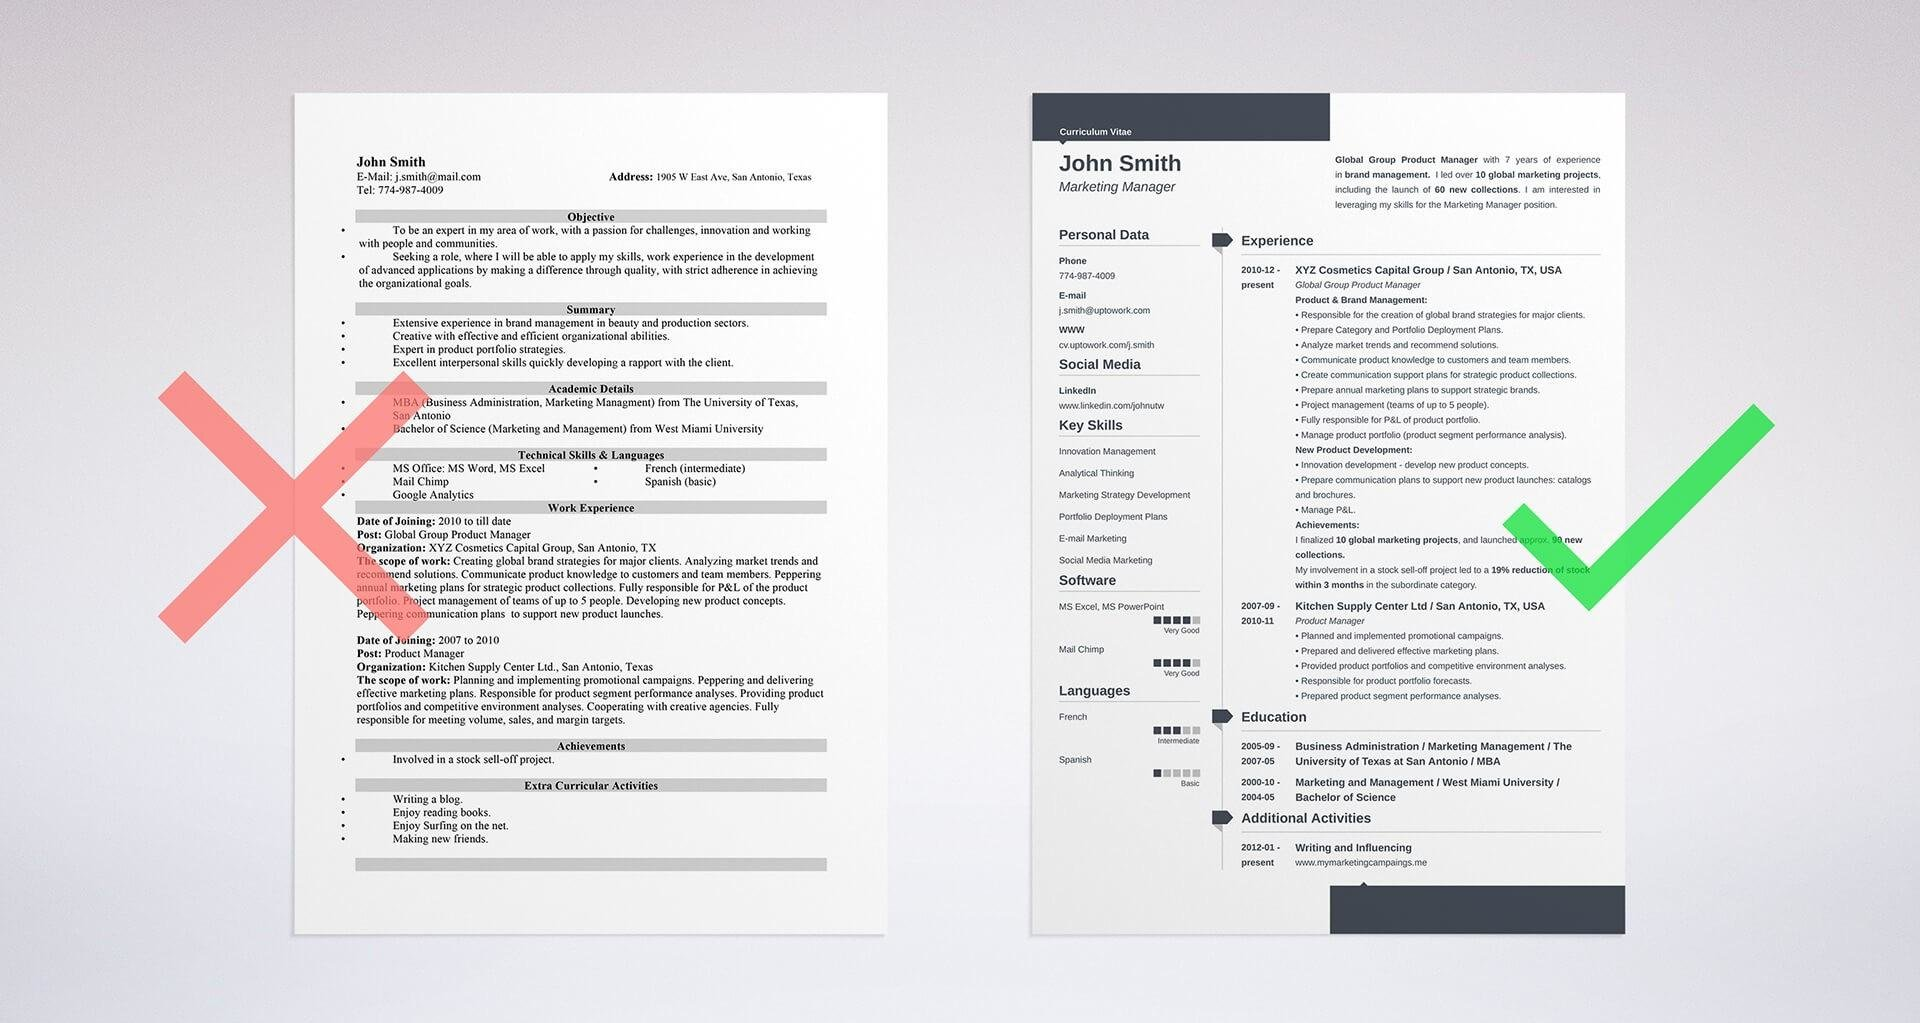 Genial +20 Resume Objective Examples   Use Them On Your Resume (Tips)